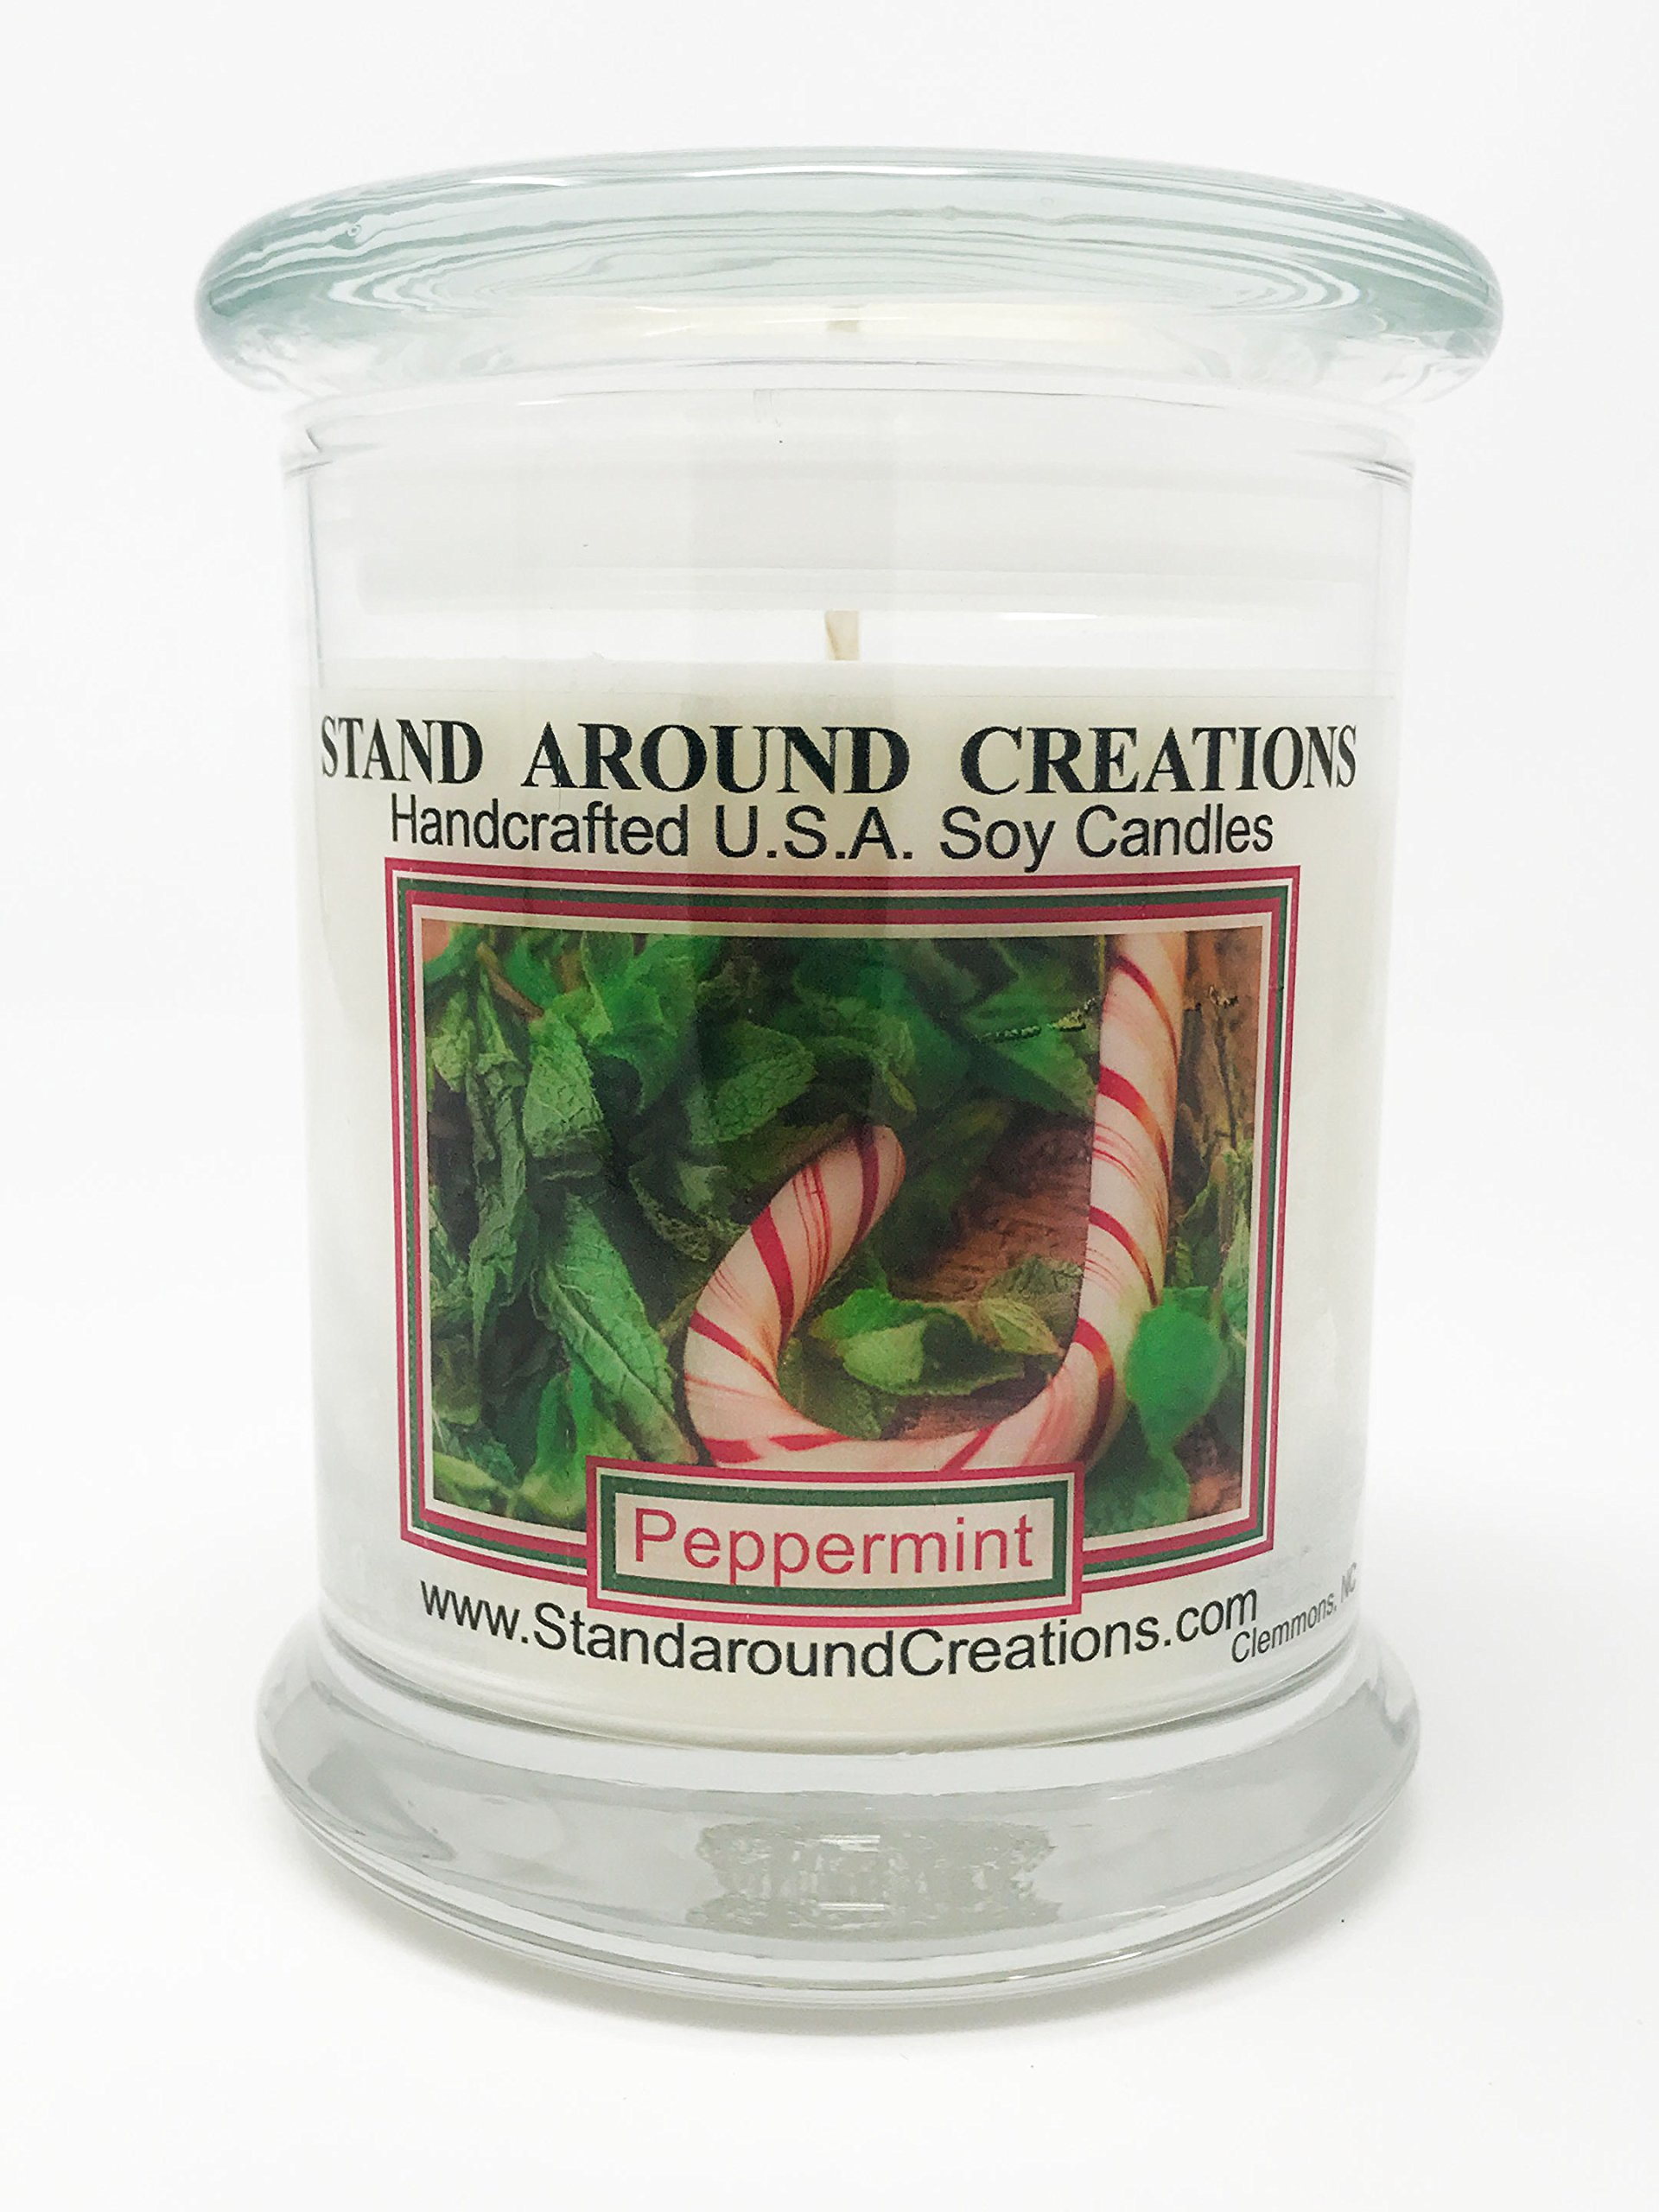 Premium 100% All Natural Soy Candle - 12 oz. Status Jar - Peppermint: Mint essential oil creates a''true to life'' scent of this much-loved winter candy. Made w/peppermint essential oil.